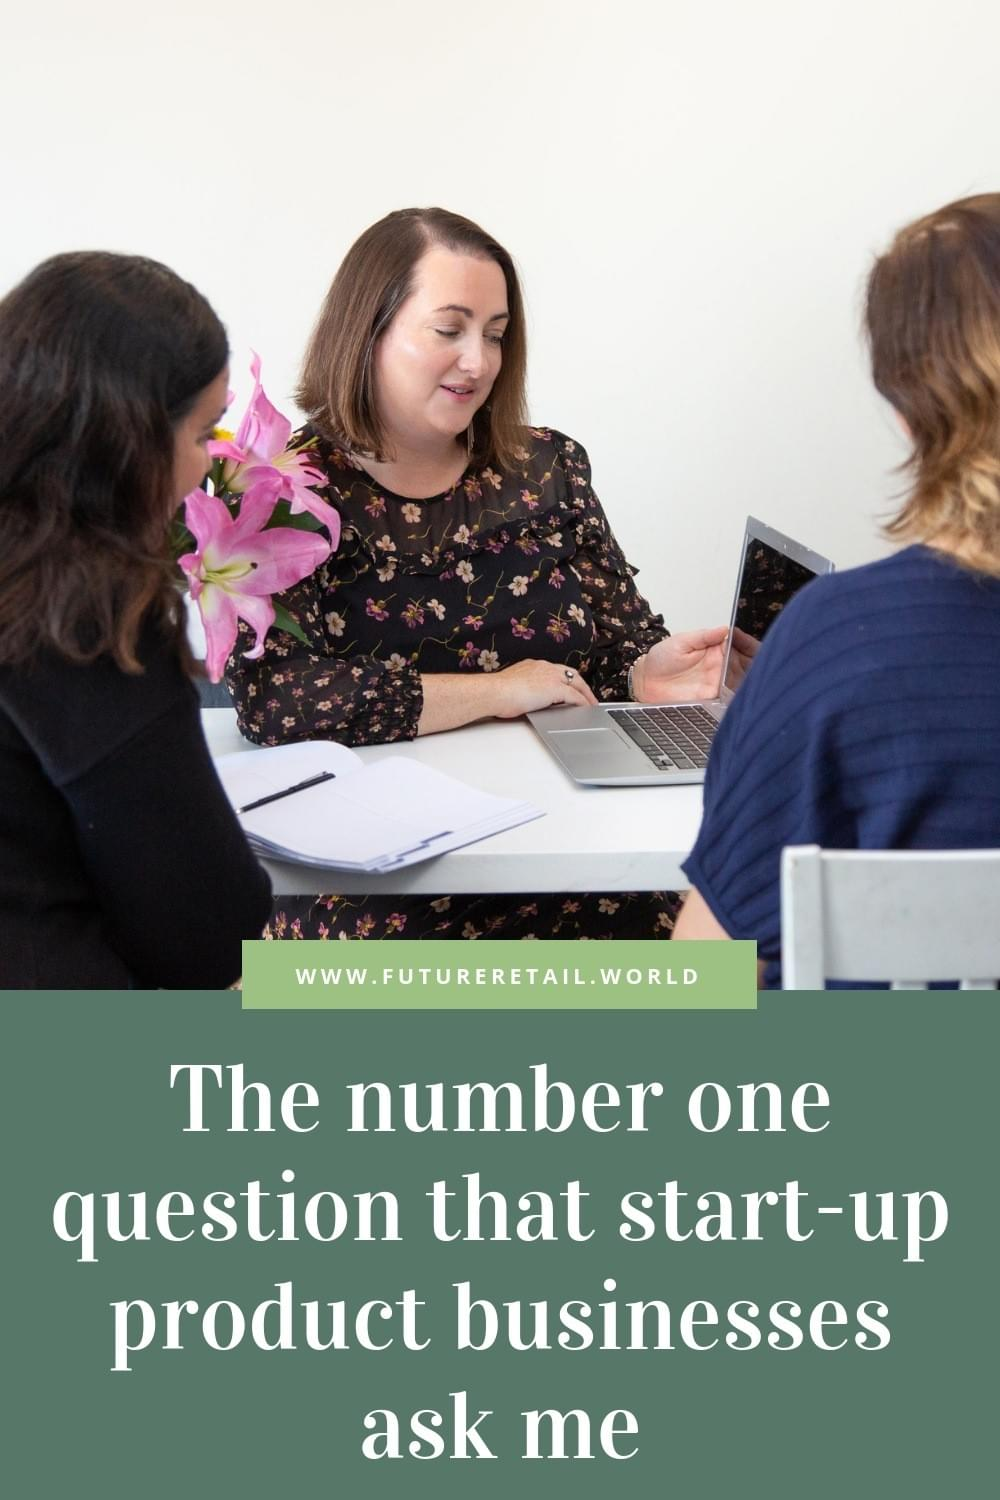 the number one question that start-up product businesses ask me